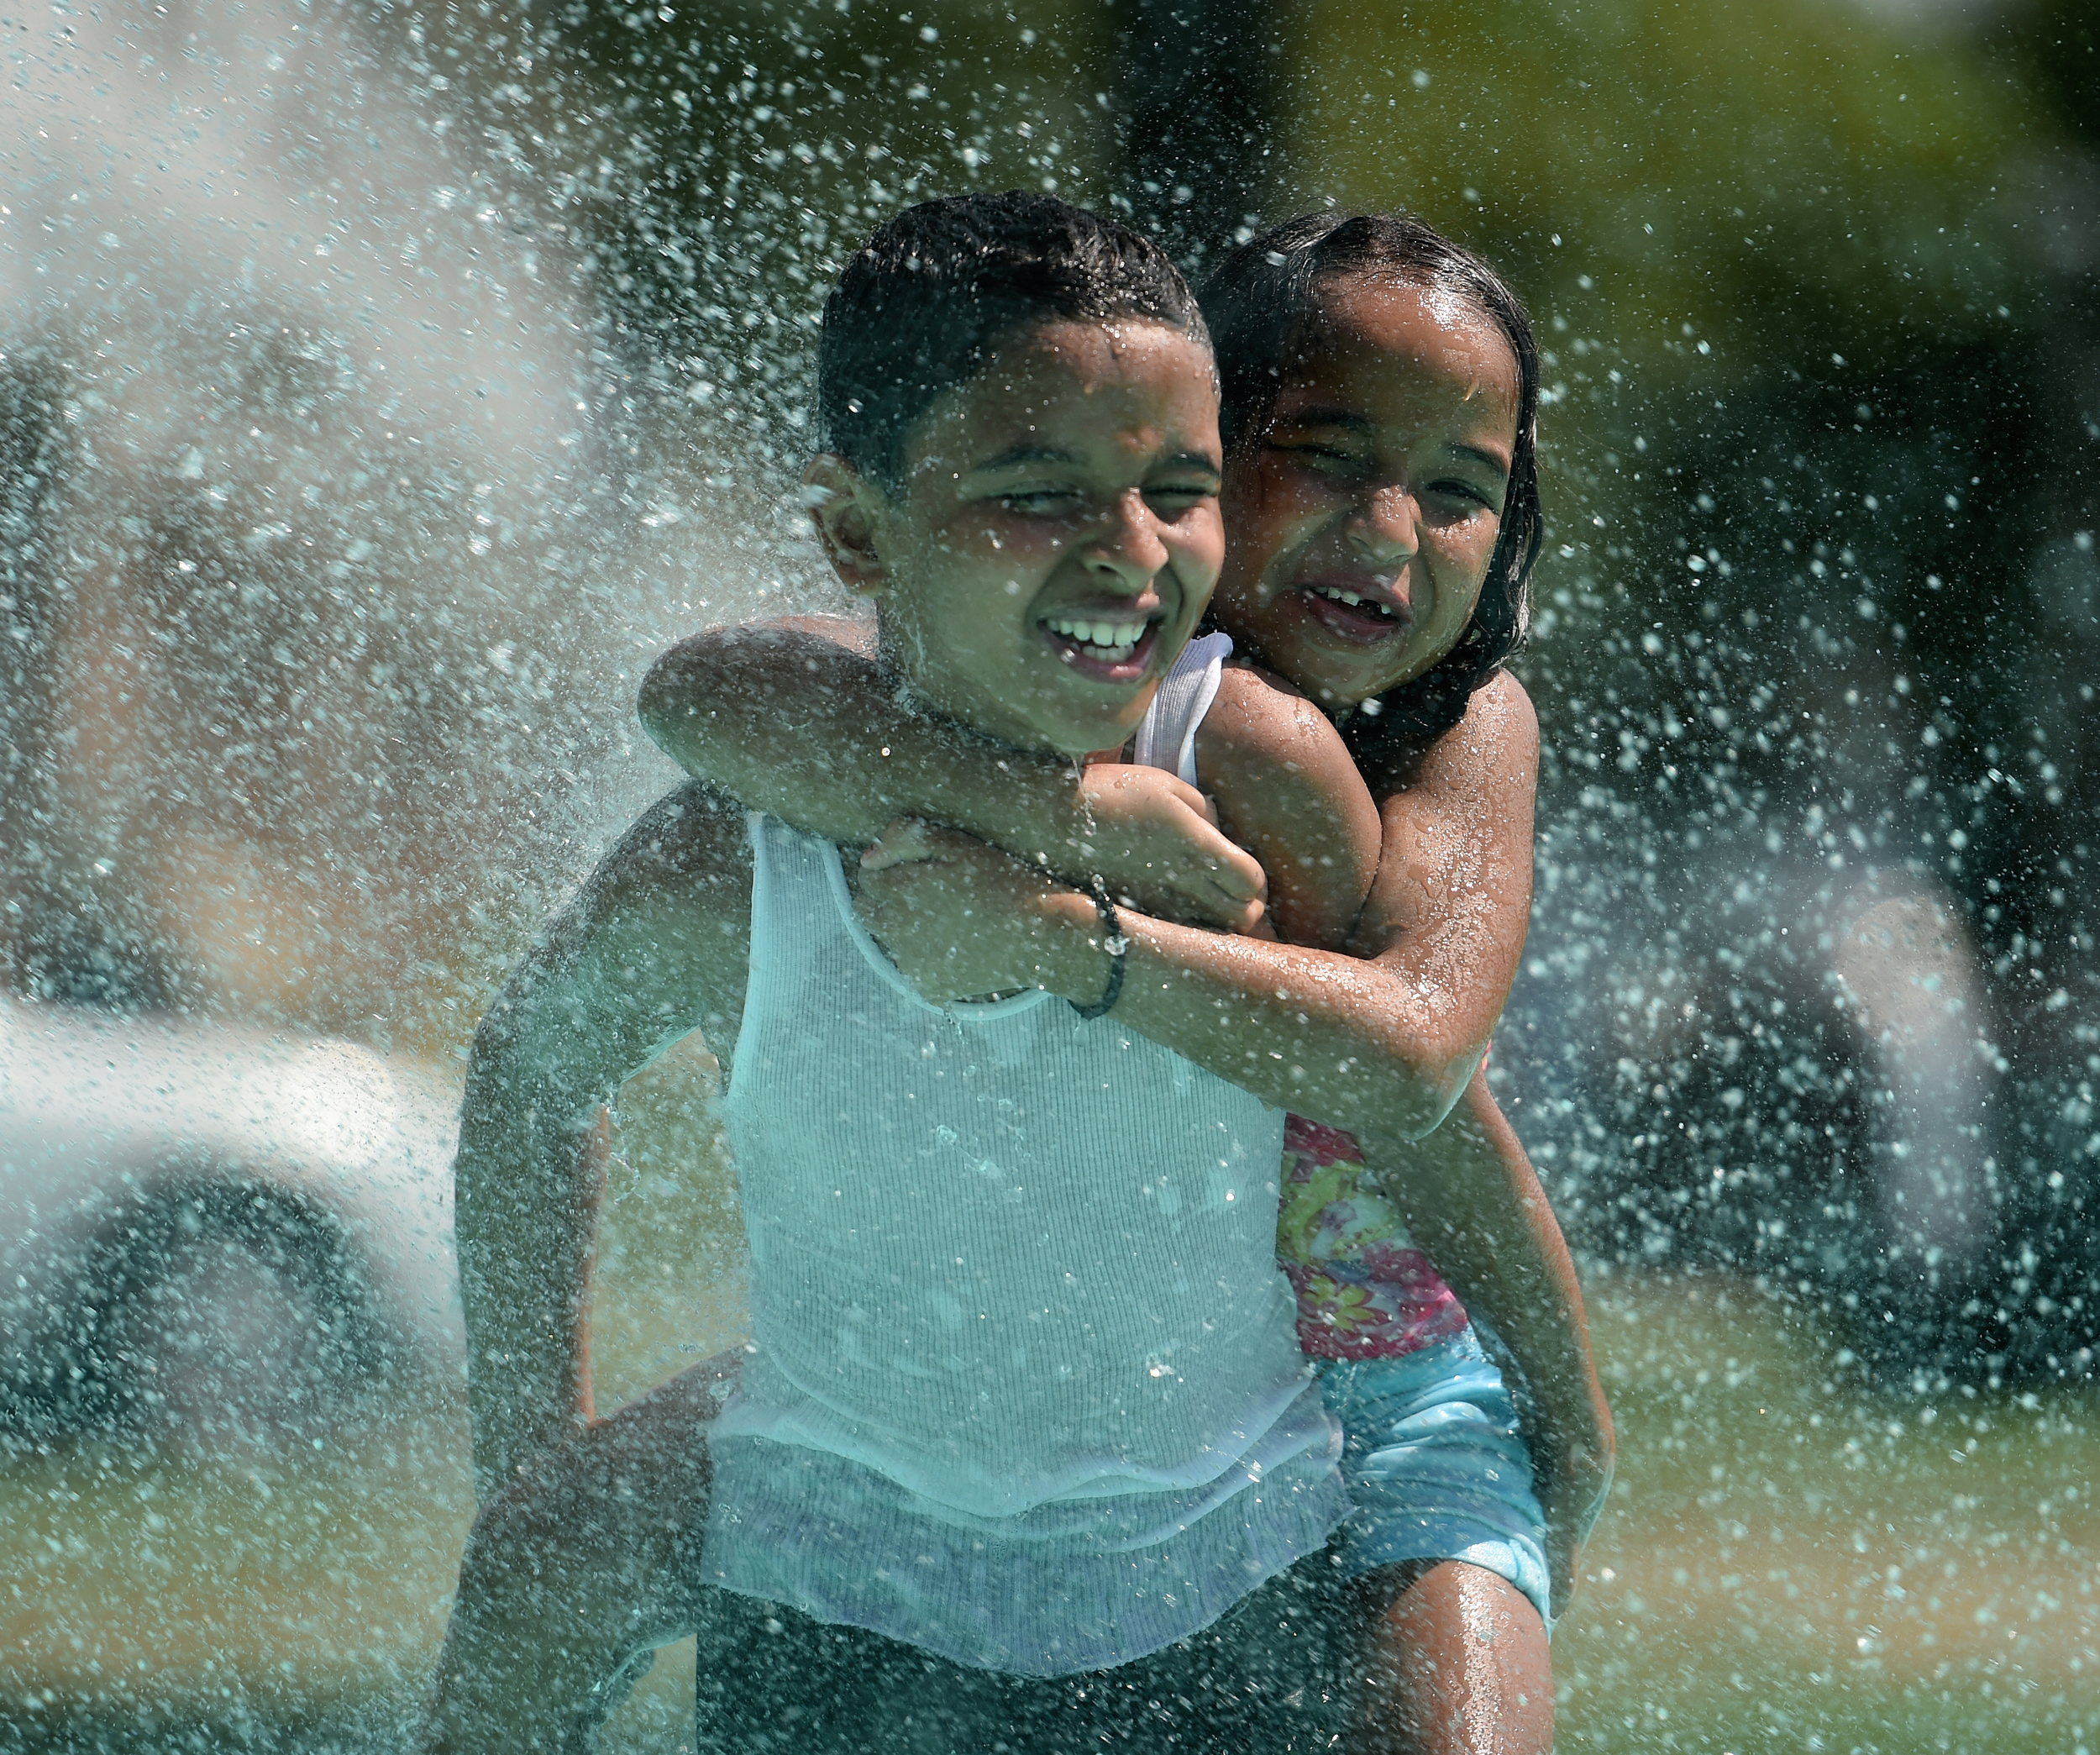 Noah Delvalle, 10, gives Leandra Tavarez, 7, of Reading a piggyback ride in the splash pad at Yarnell Park in Shillington, PA, on July 21, 2016. The temperature in Shillington that day reached 95 degrees. (Reading Eagle: Sarah Stier)